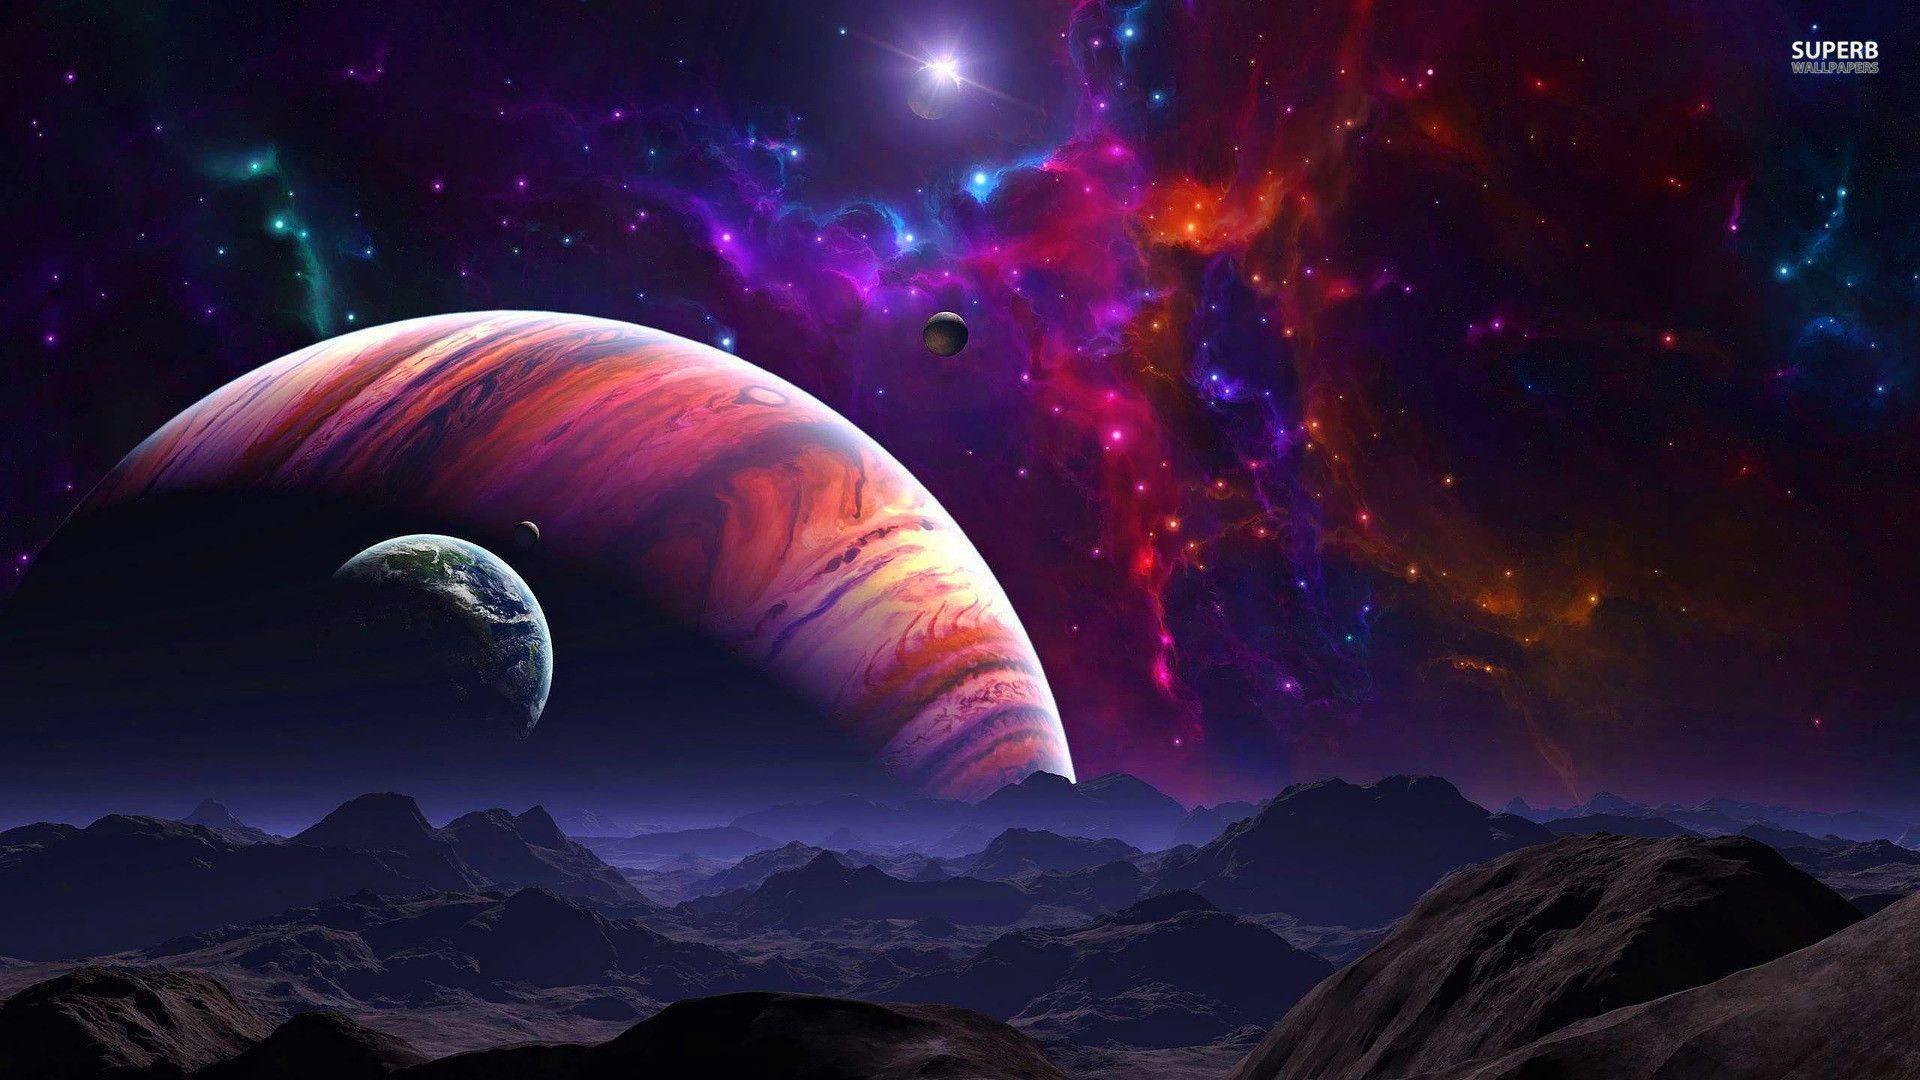 FunMozar – Most Beautiful Space Photos and Wallpapers